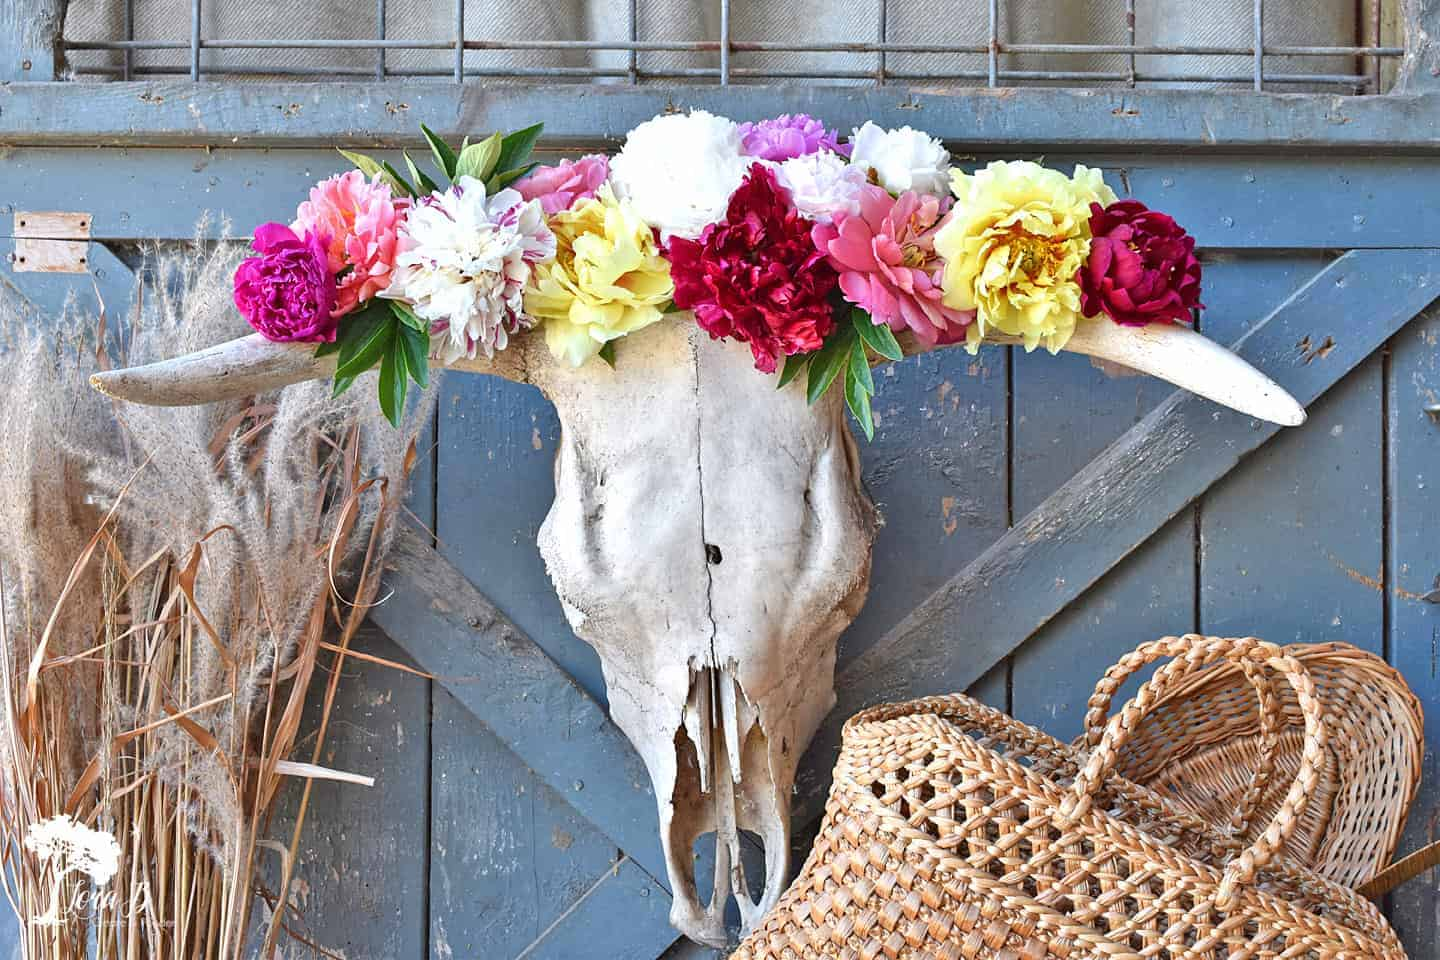 25 Great Photo Styling Tips Using Vintage and Flowers